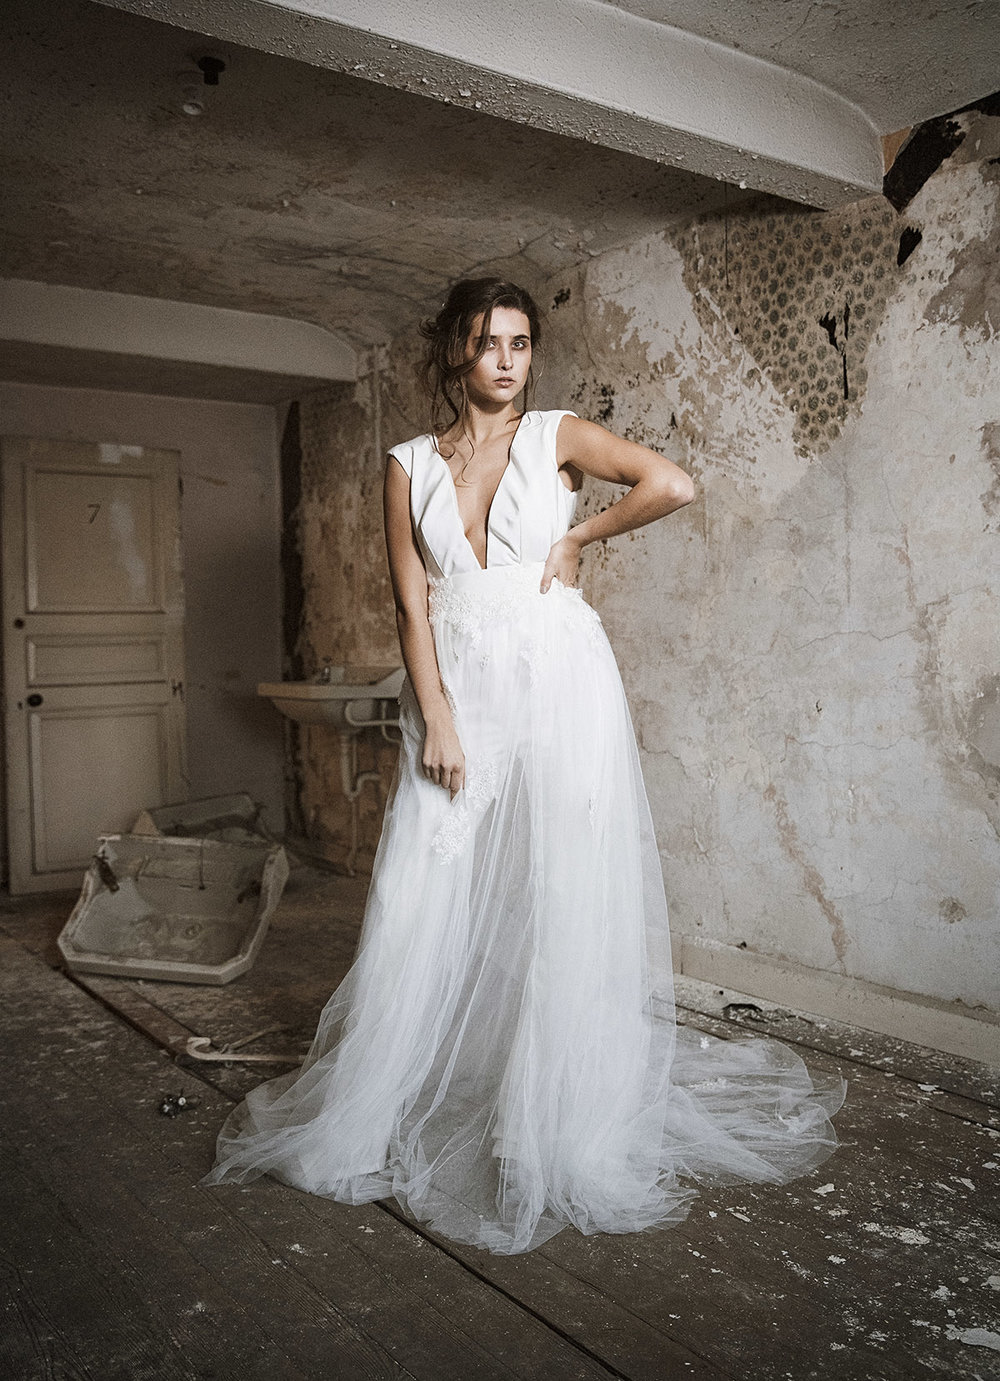 Karl Bratby Commercial Photography photoshoot for Couture Brdial Wear designer Danielle Sykes